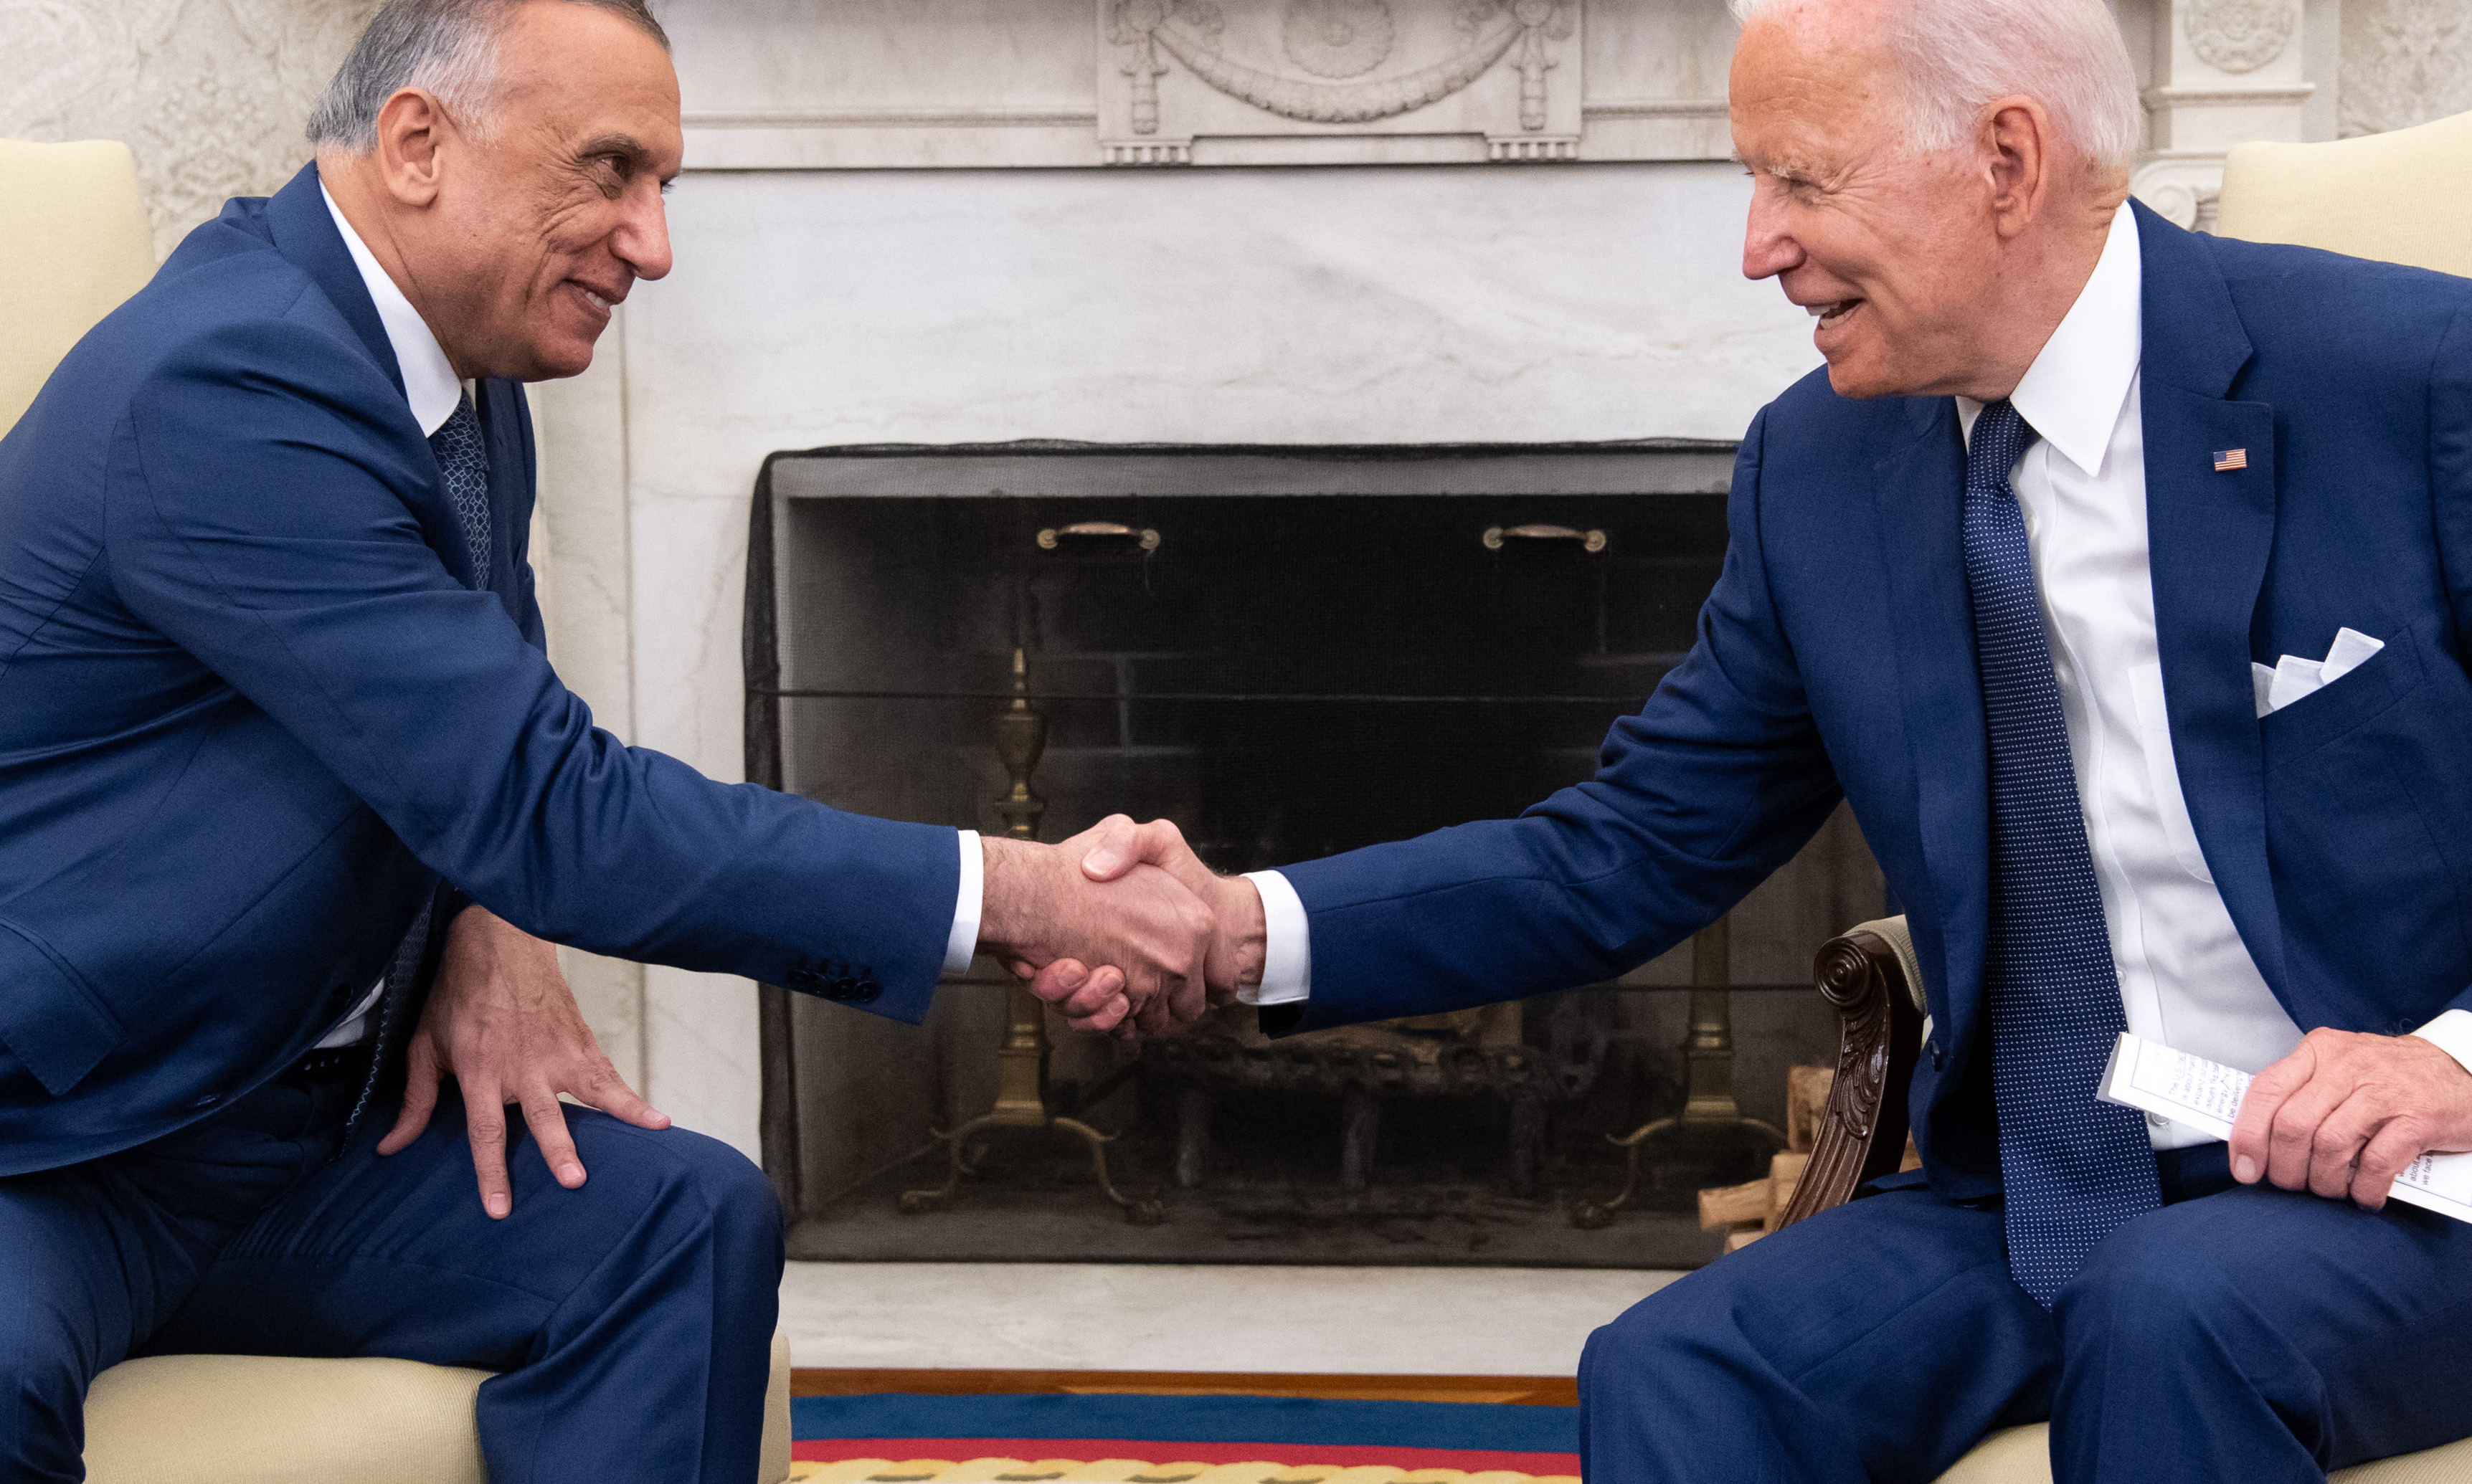 Joe Biden shakes hands with Iraqi Prime Minister Mustafa Al-Kadhimi, left, in the Oval Office of the White House in Washington, D.C., July 26, 2021. (Photo by SAUL LOEB/AFP via Getty Images)